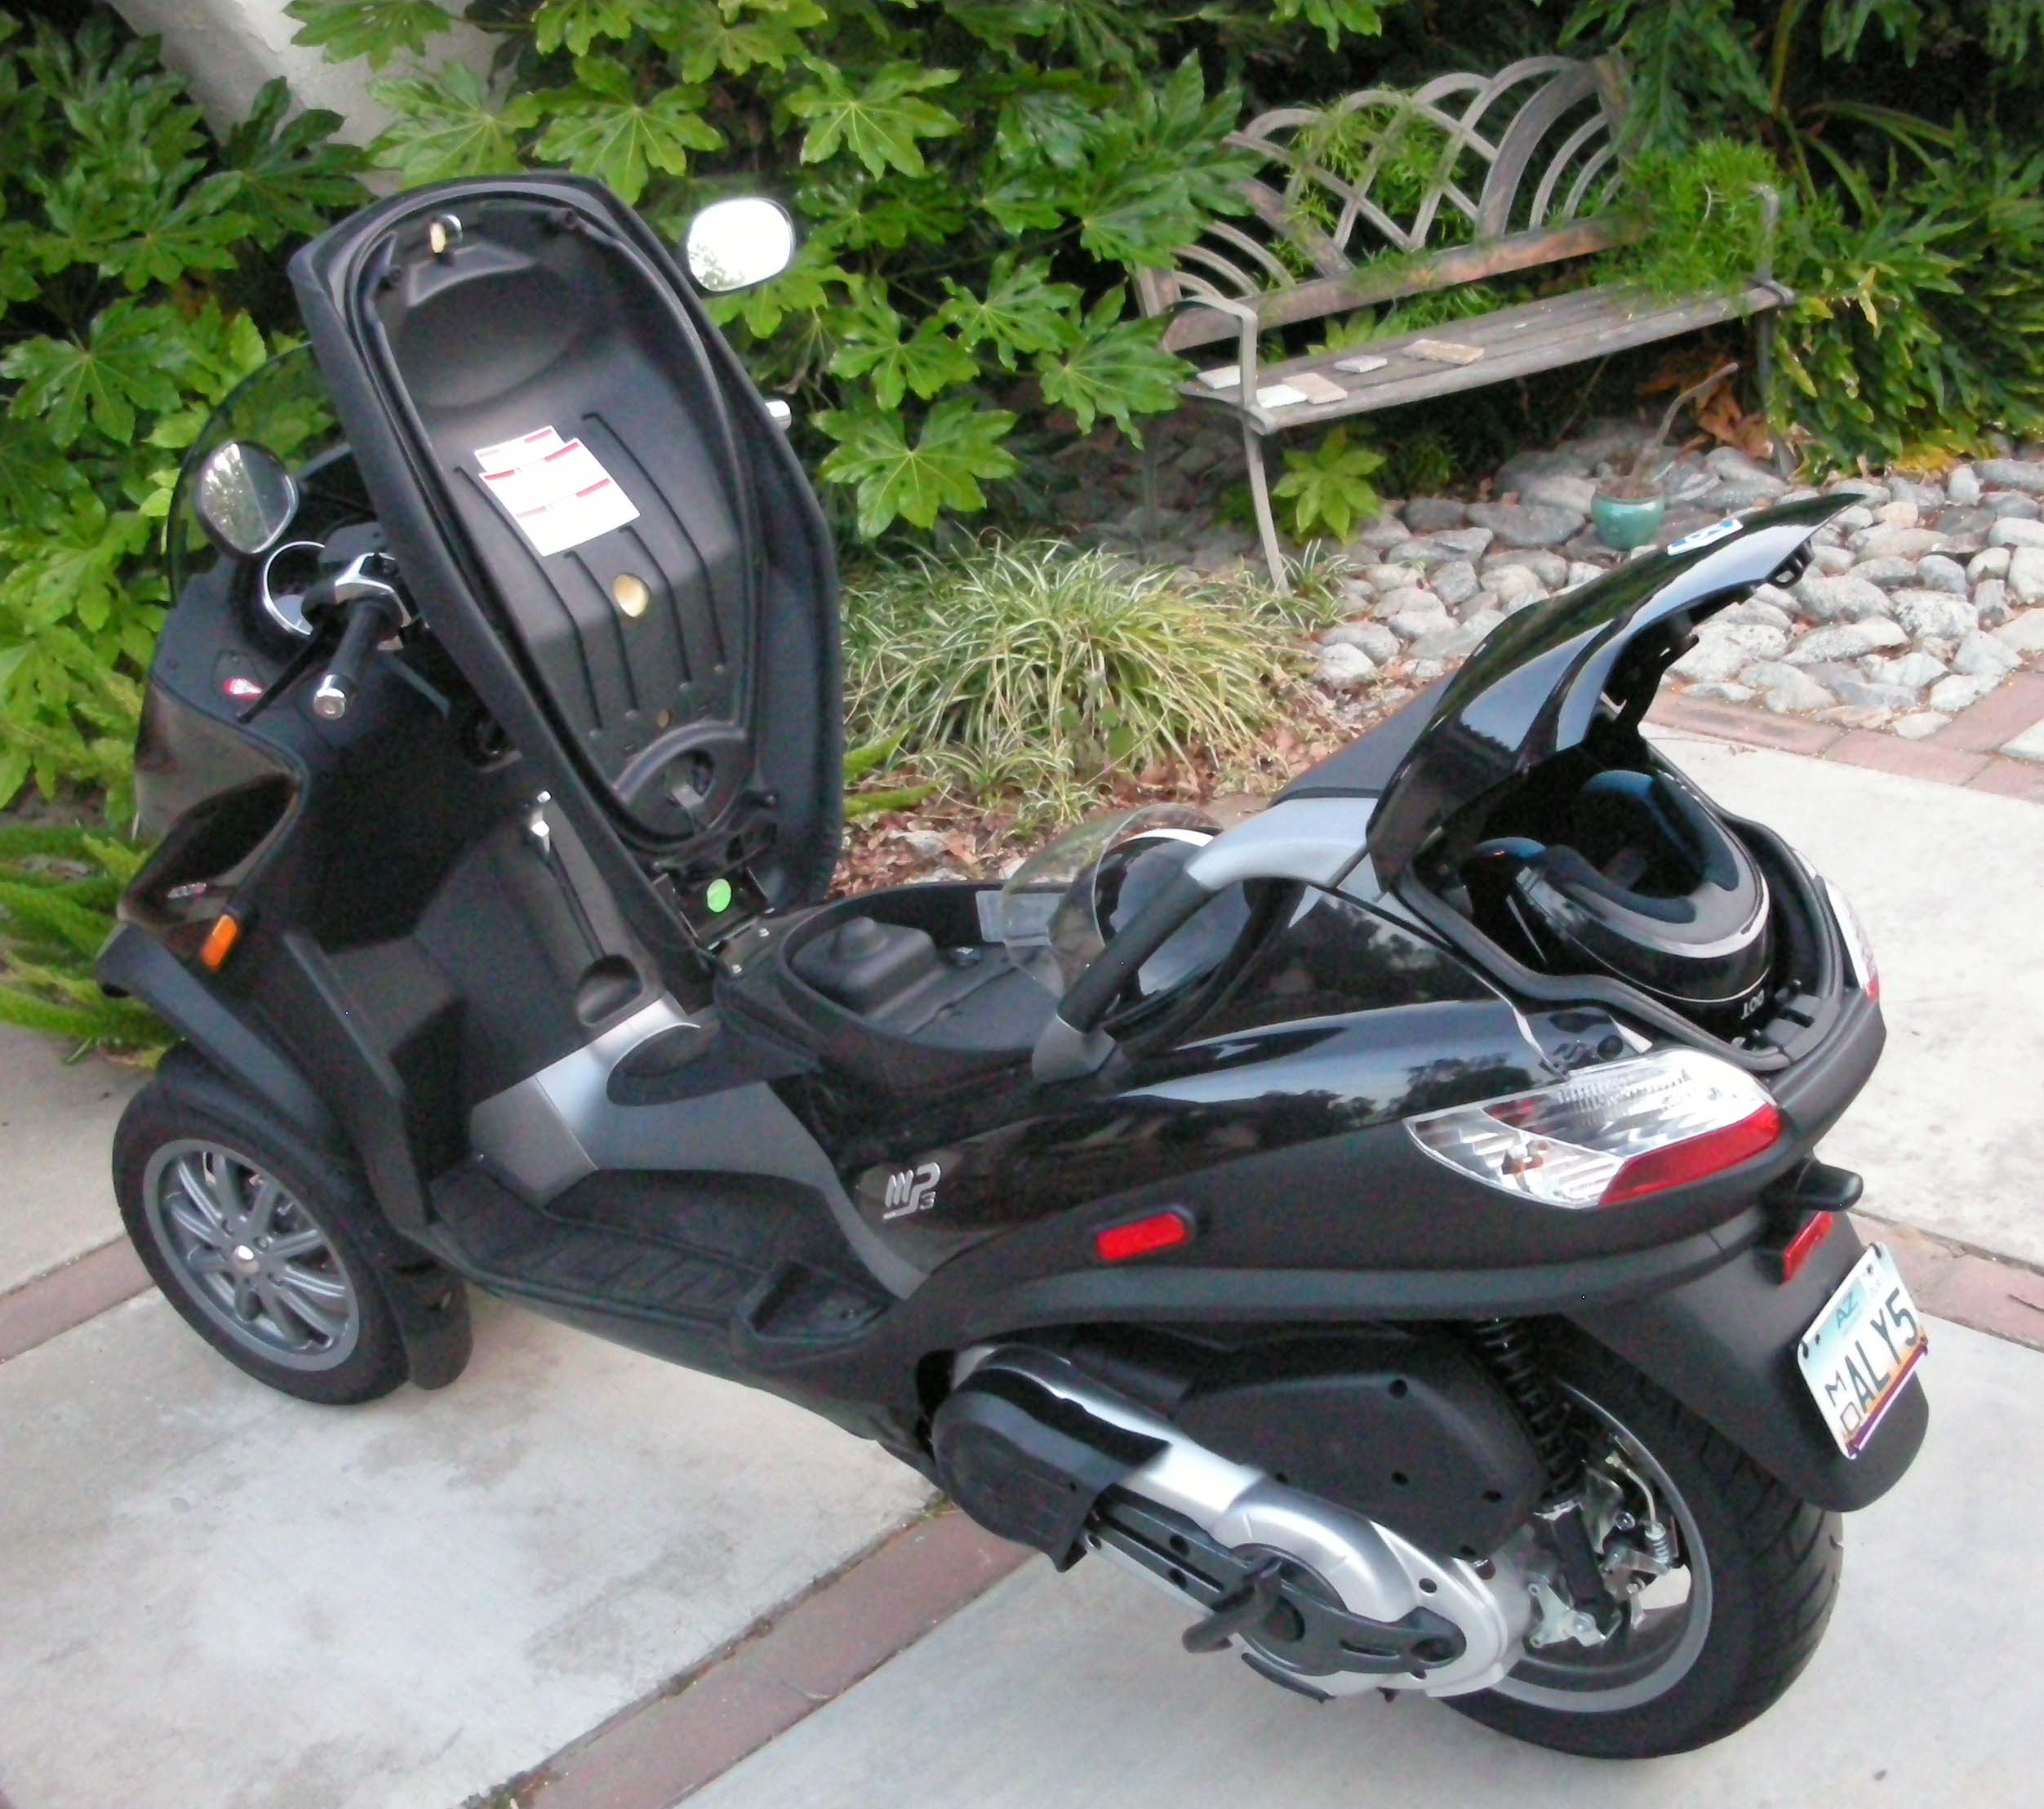 piaggio mp3 scooter three wheeled wonder the car family. Black Bedroom Furniture Sets. Home Design Ideas